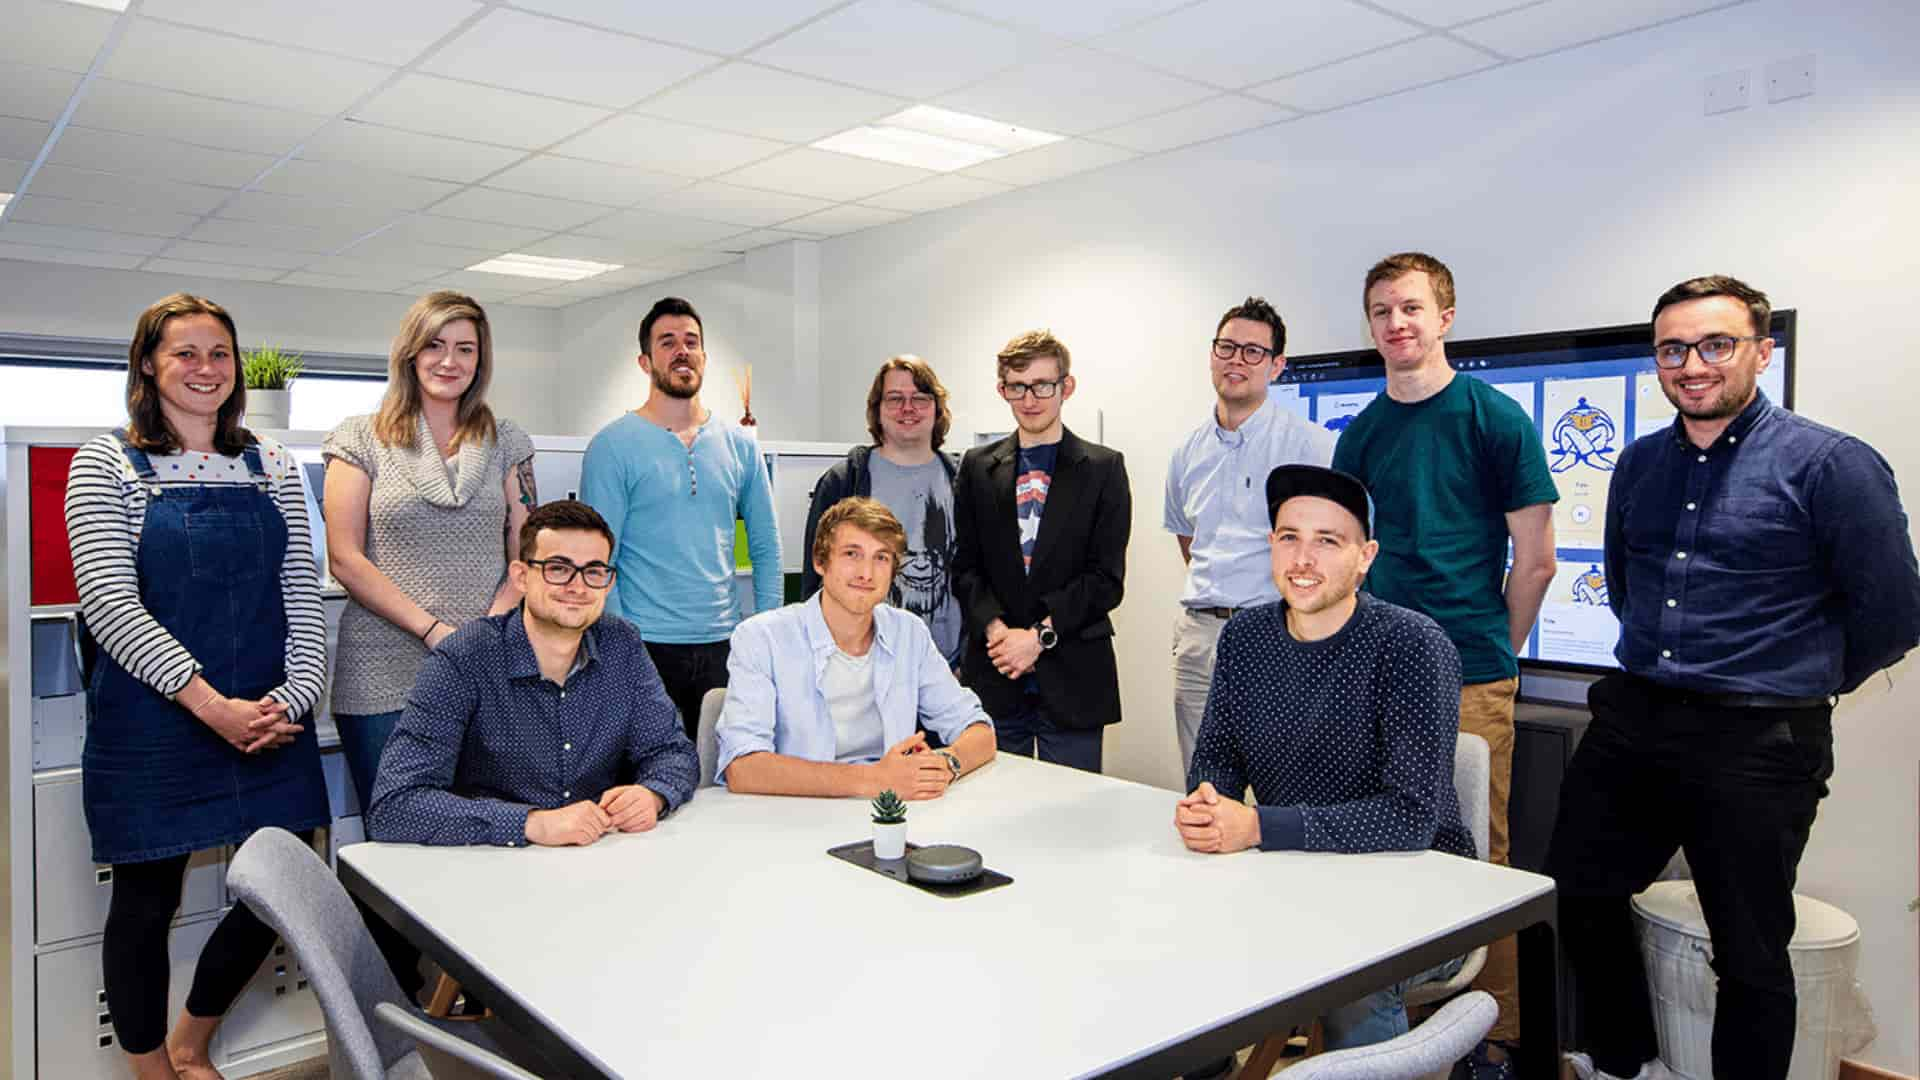 The Hiyield team photograph in their office